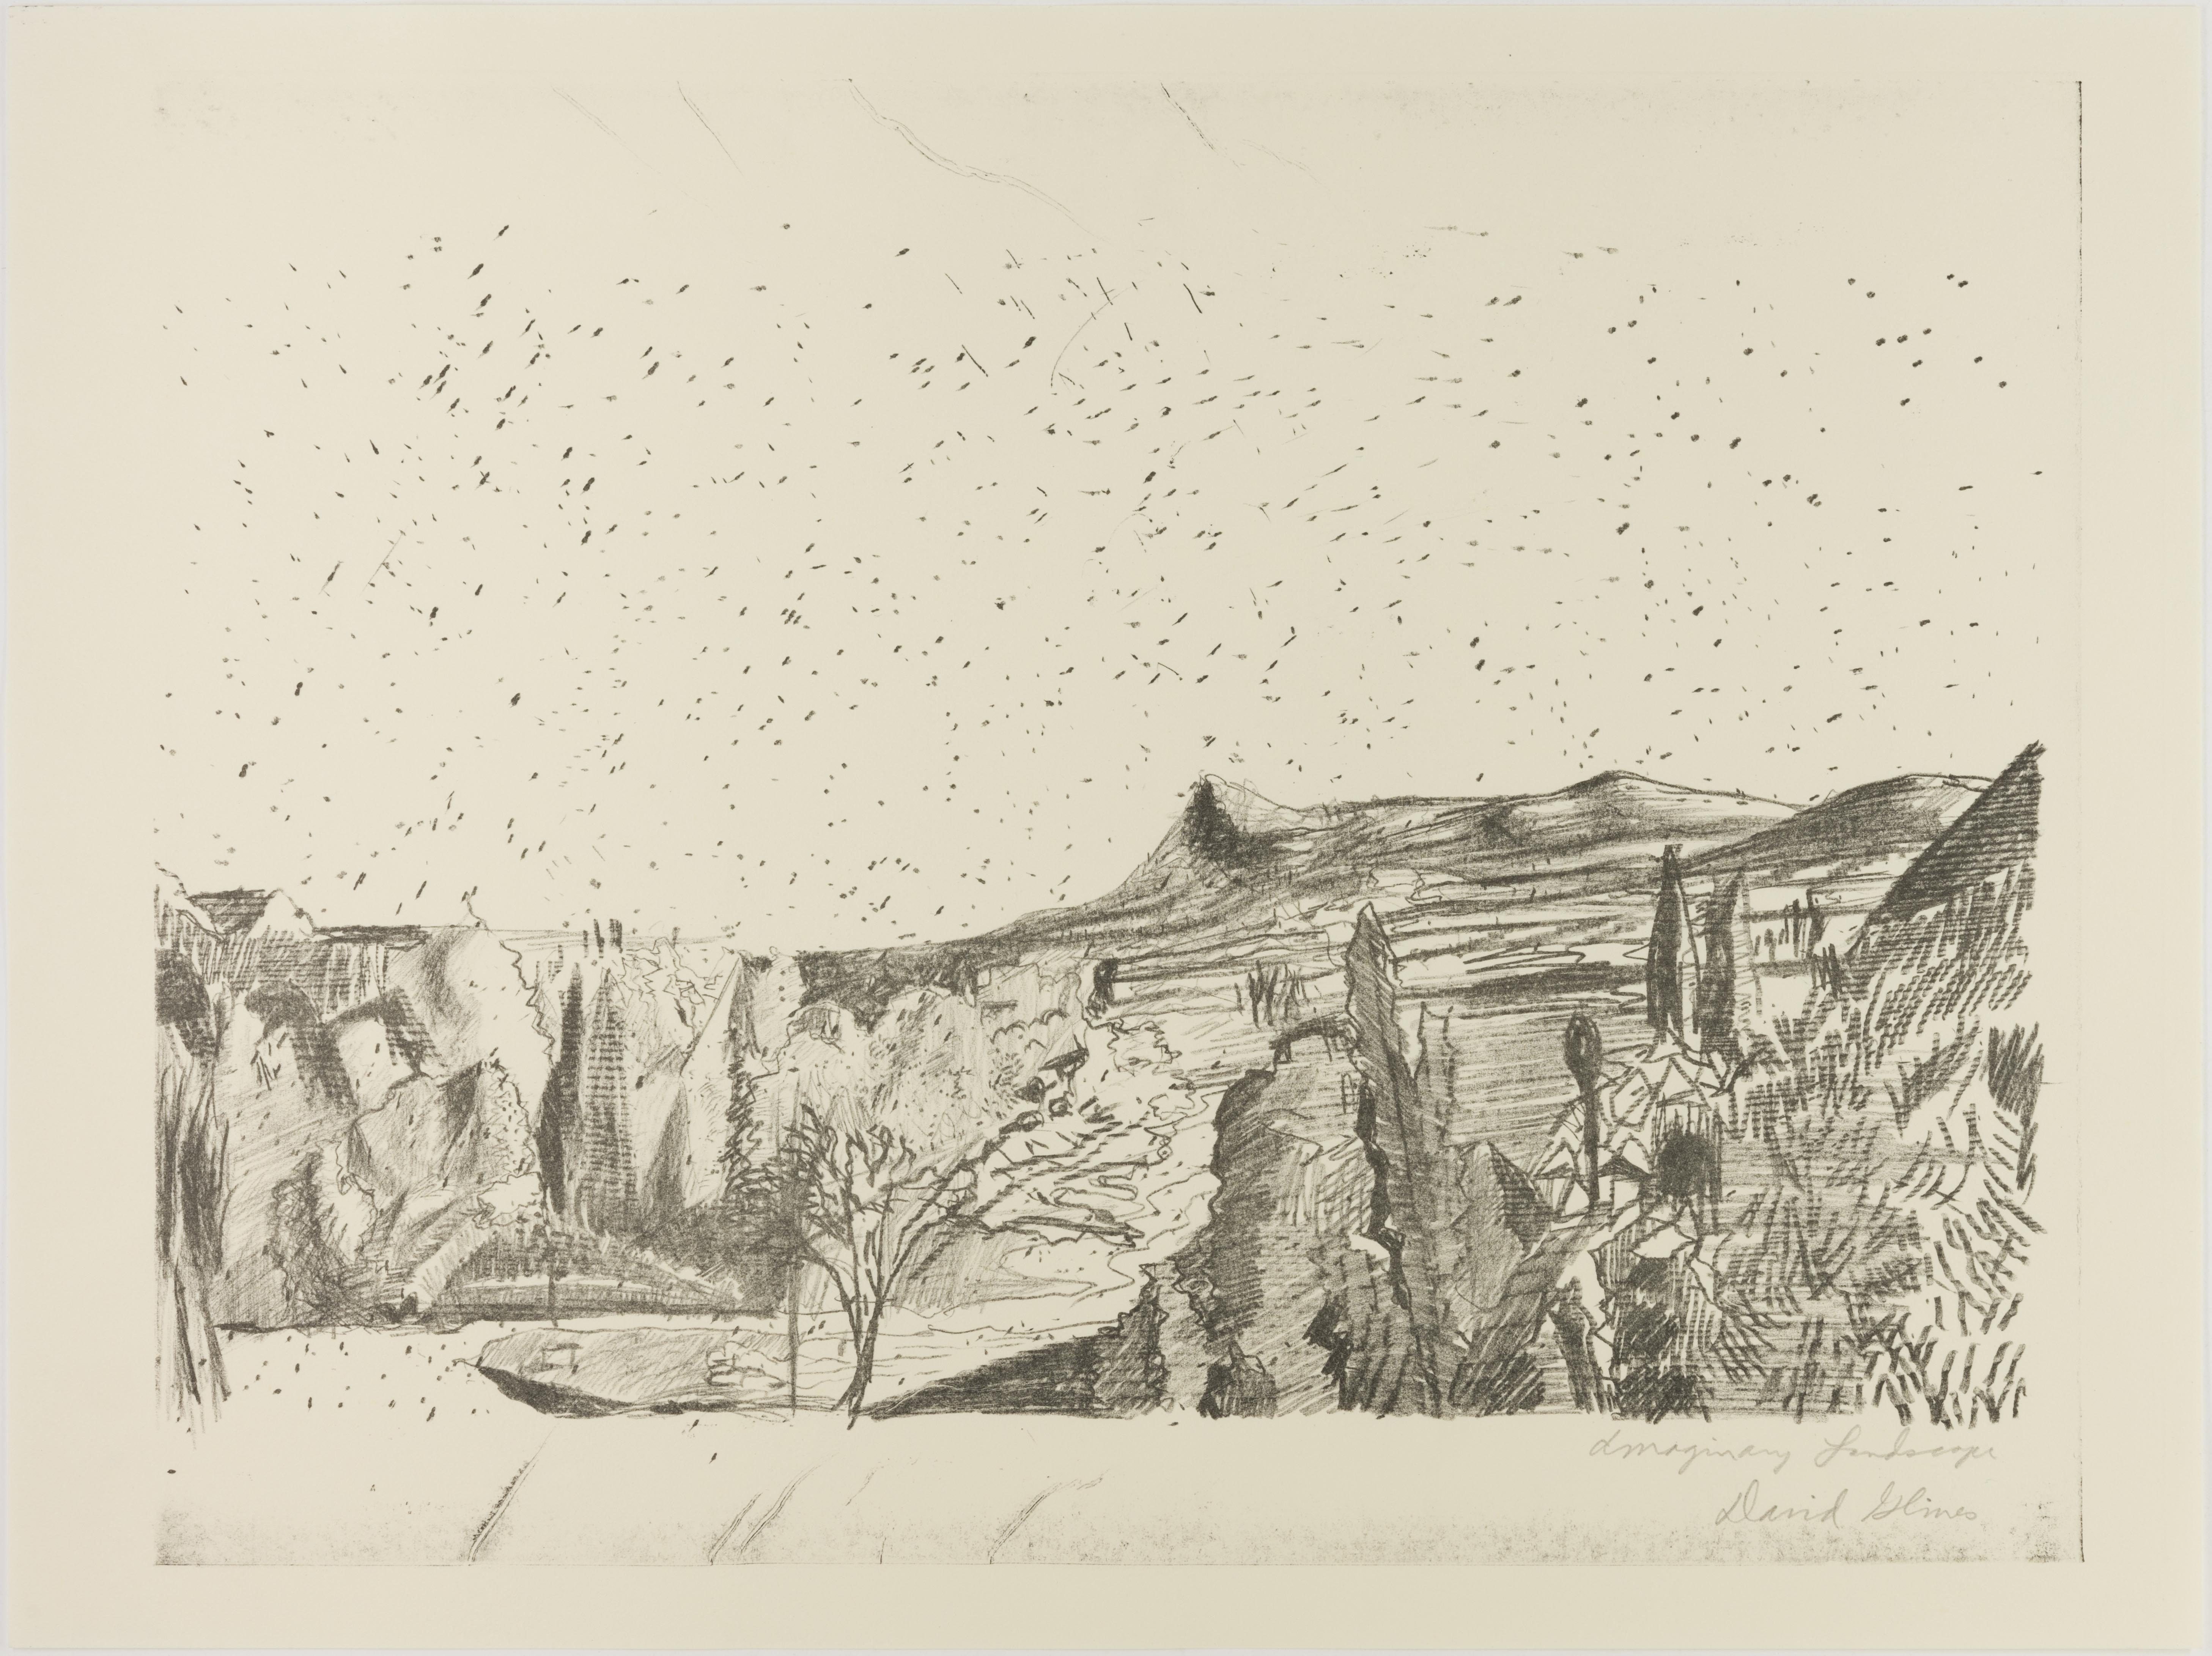 David Glines, Imaginary Landscape, September 15, 1971